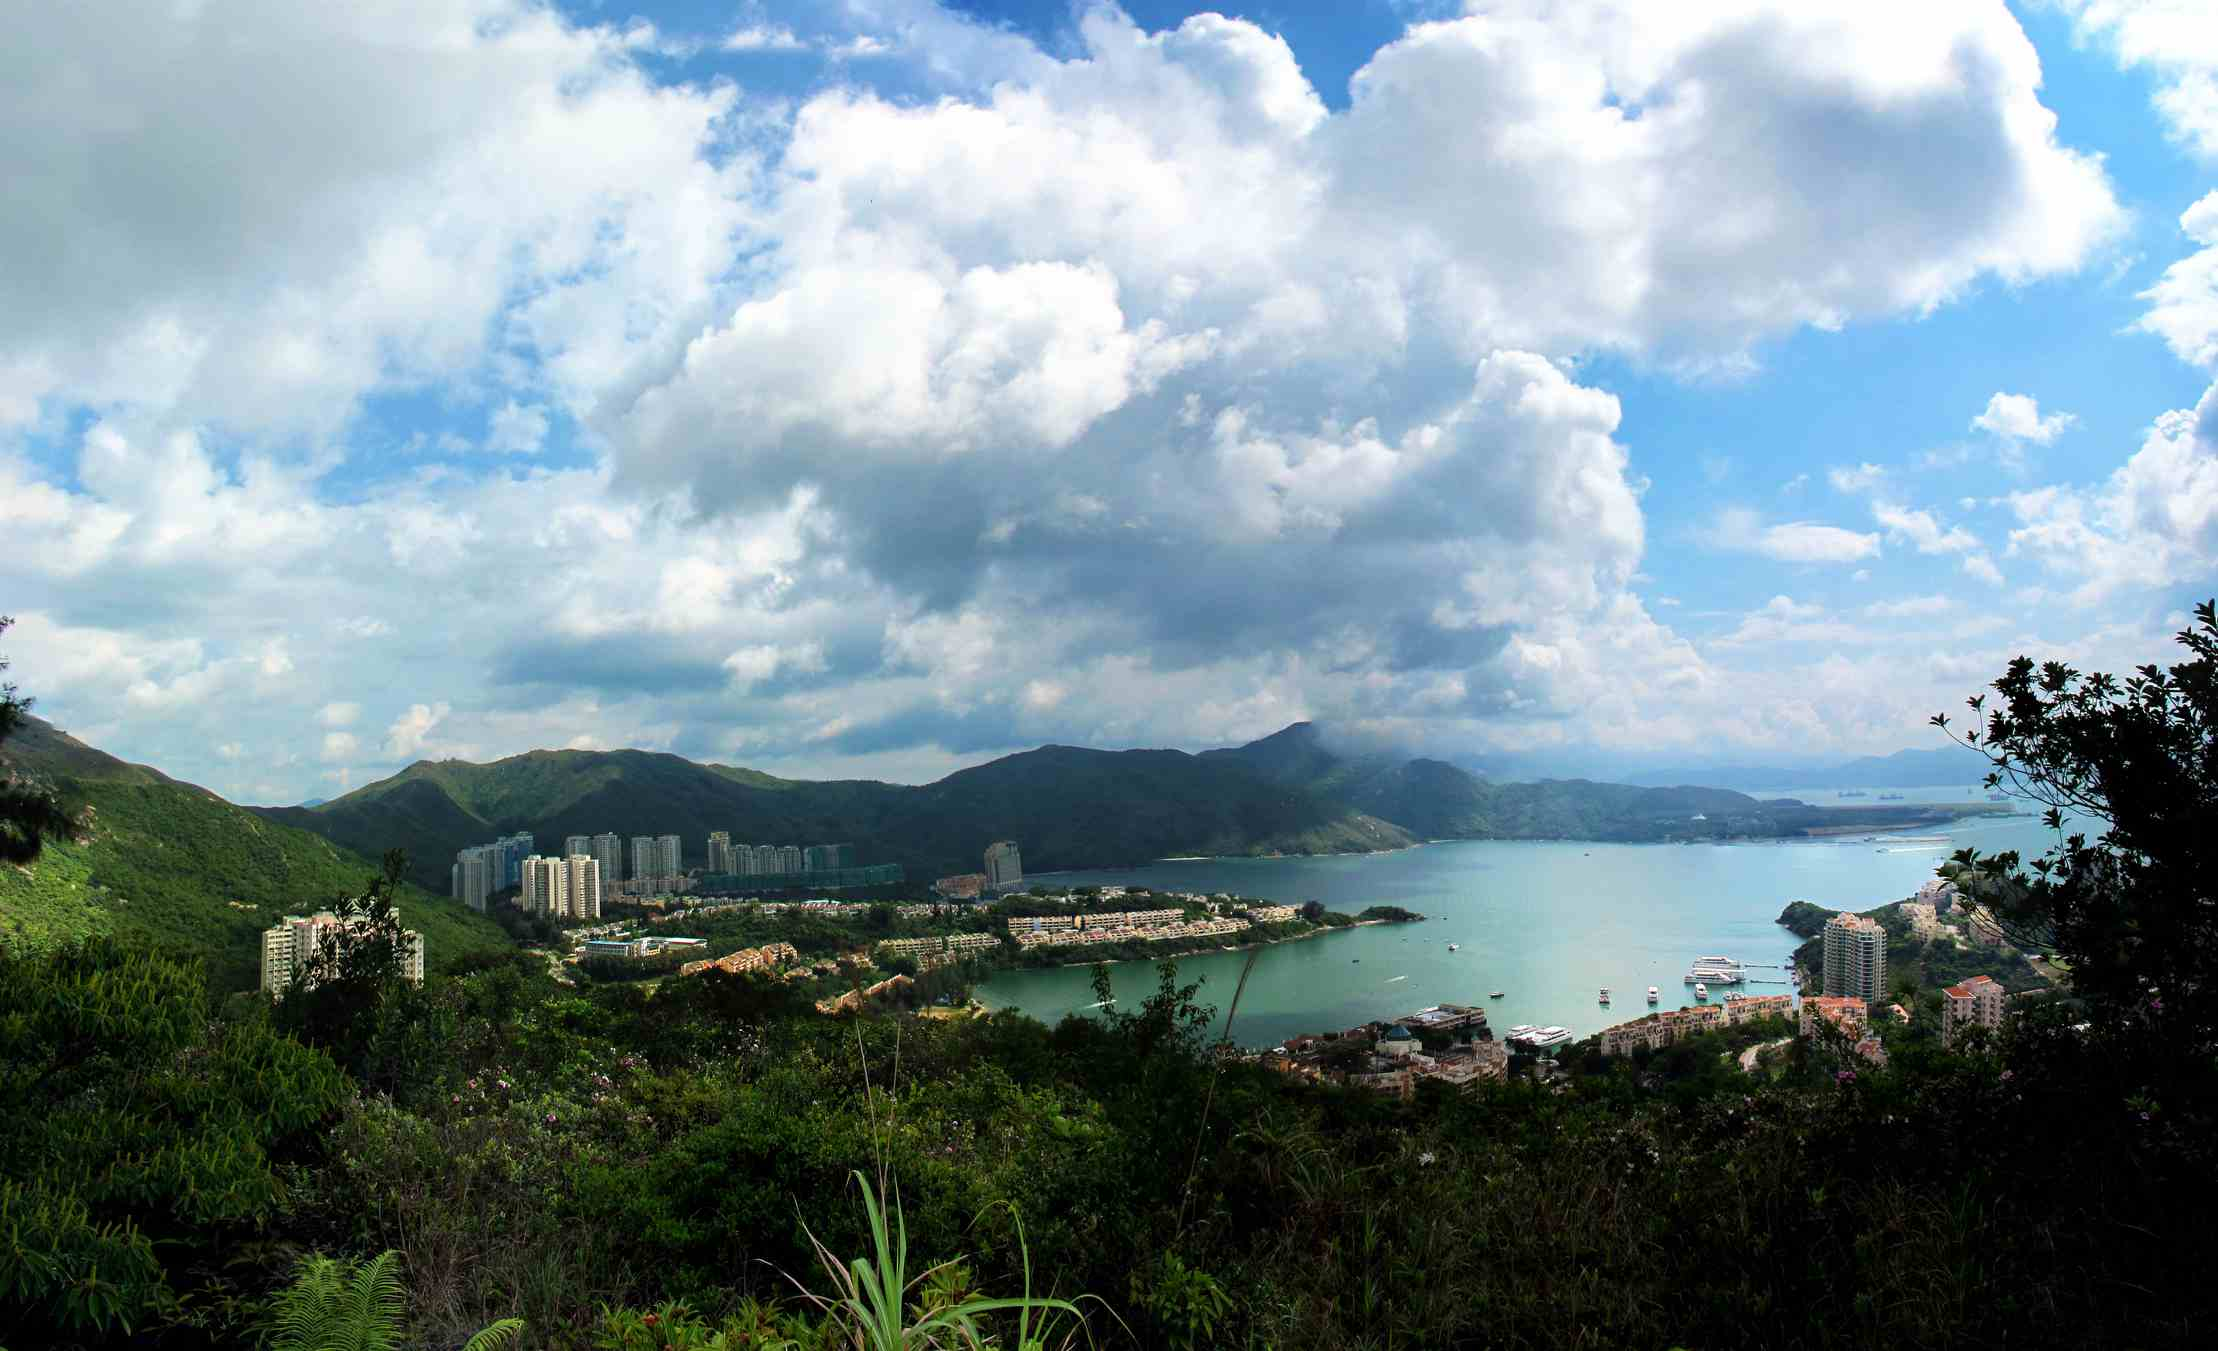 Wide view of Discovery Bay in Hong Kong and surrounding mountains and ocean